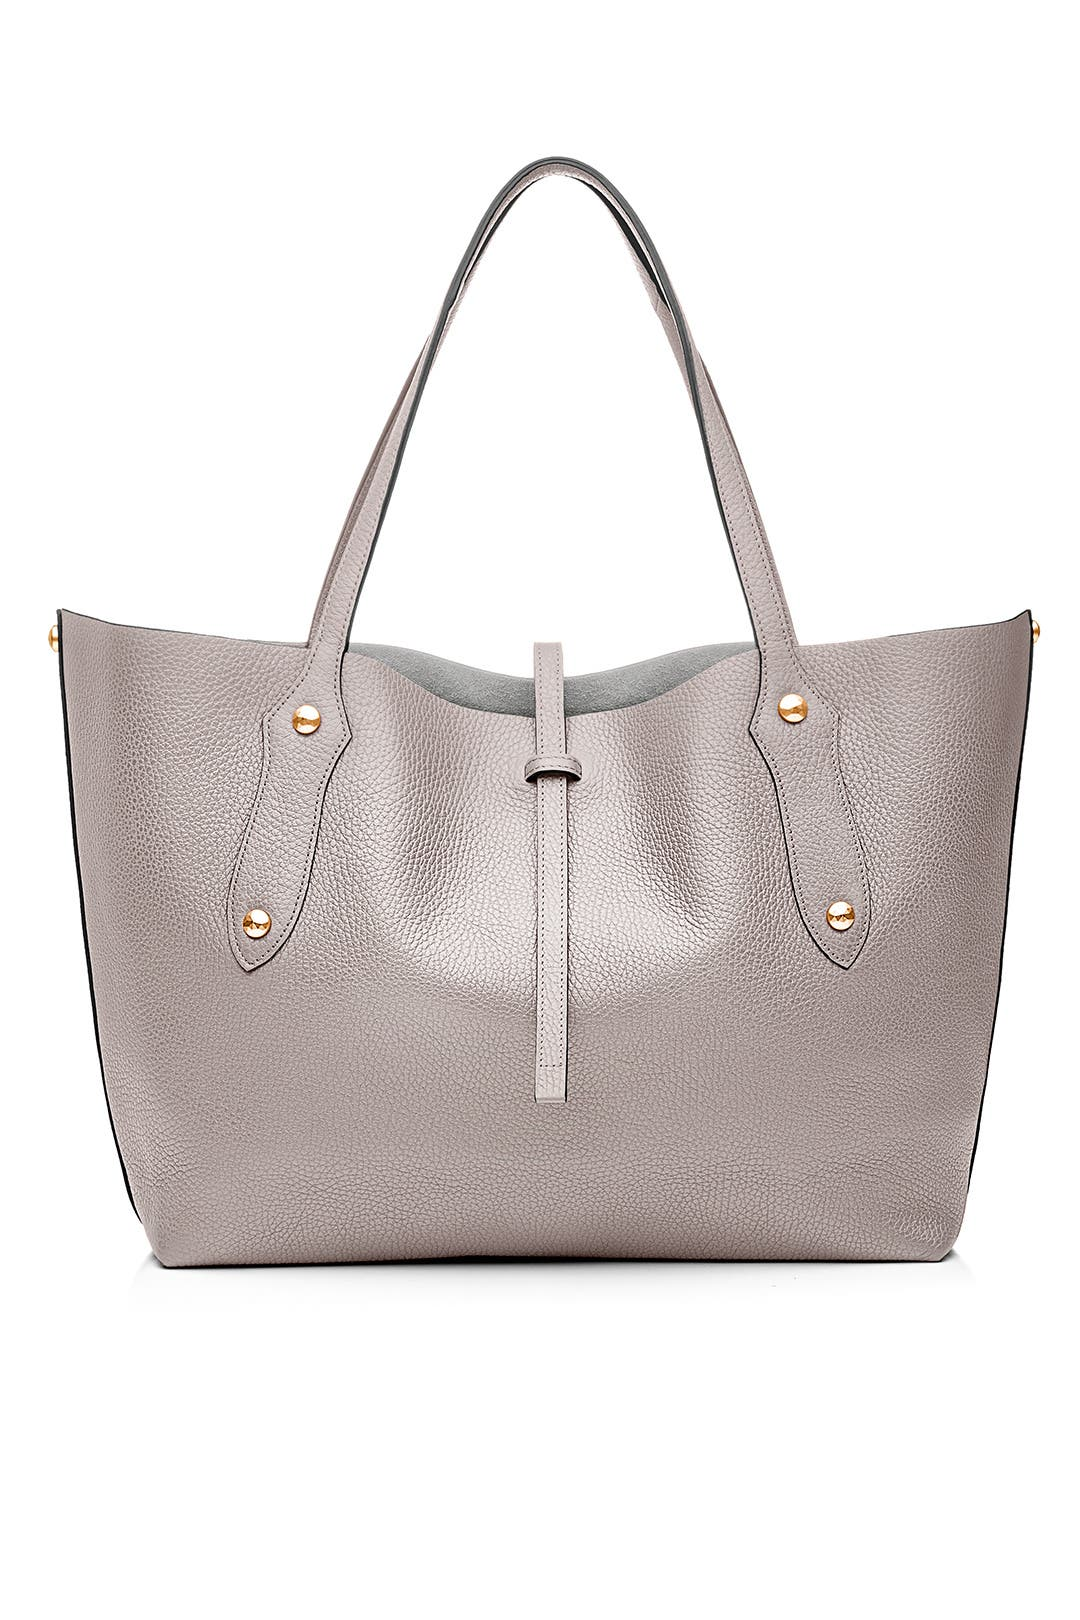 Annabel Ingall. Read Reviews. Zinc Small Isabella Tote 11ca73341c85d